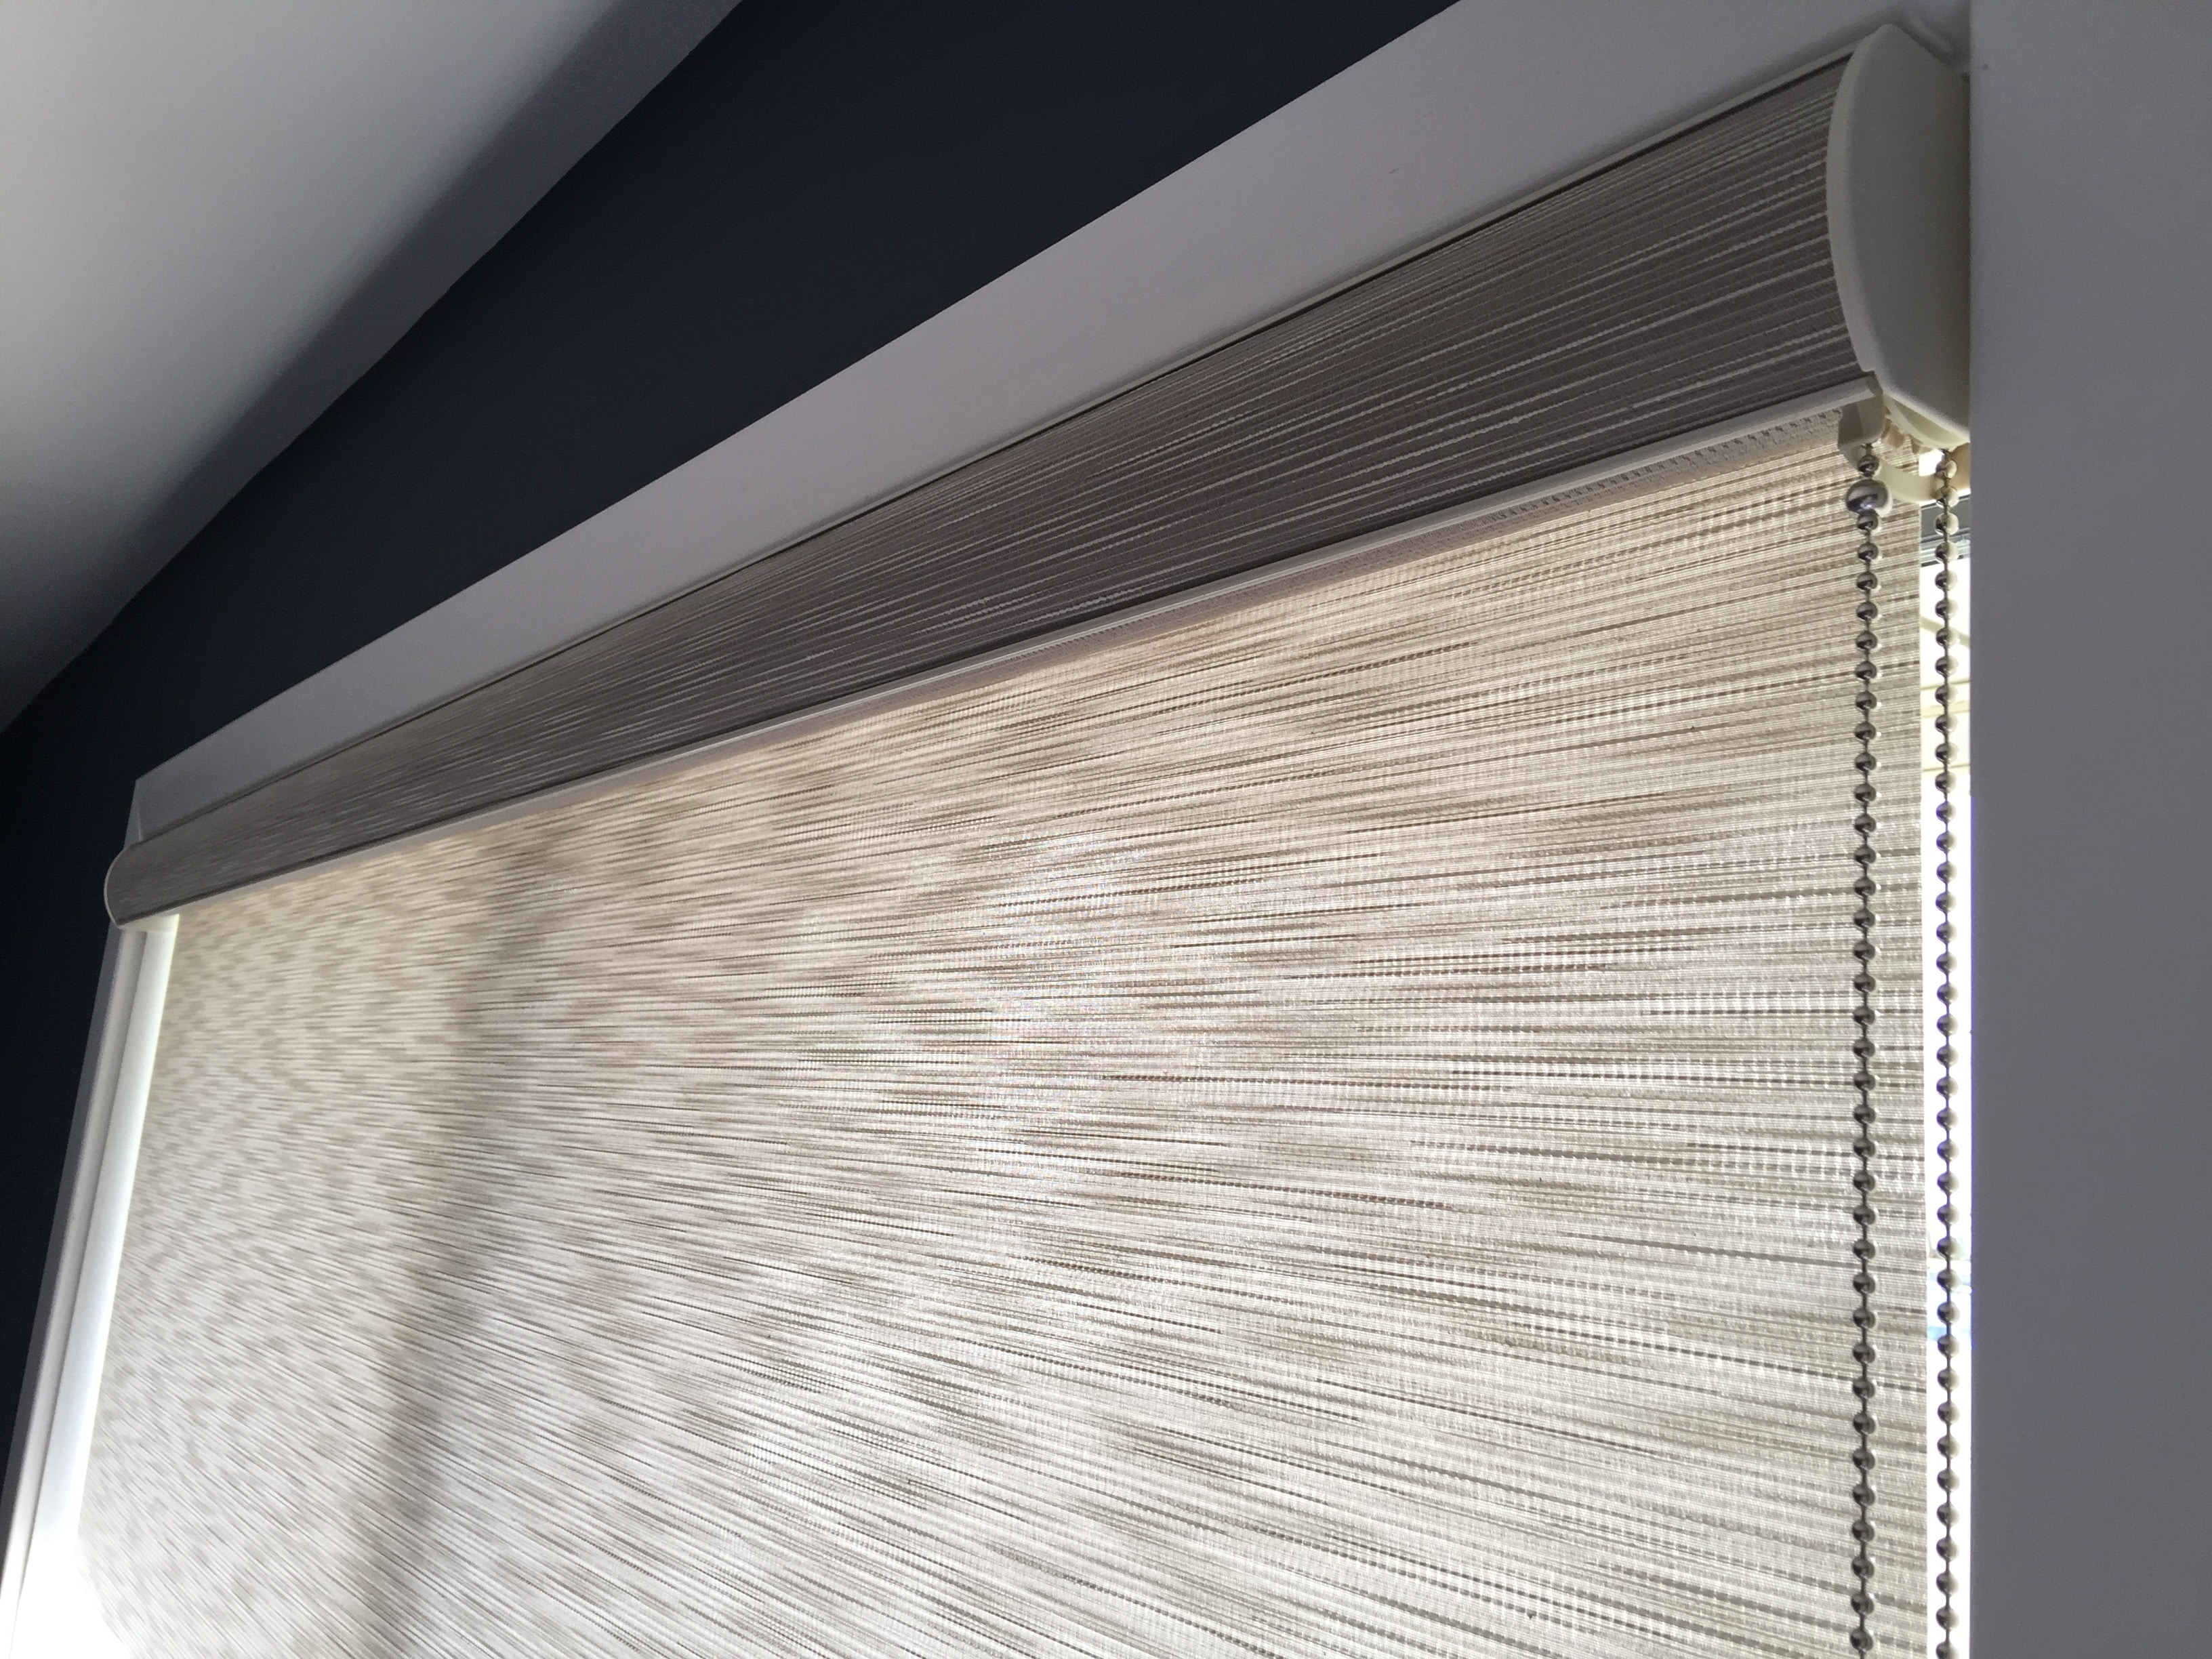 go near roman legacy charming me blinds spectacular americanblinds shade com shop stores gallery inspiration to ideas blind photo shades custom with awesome